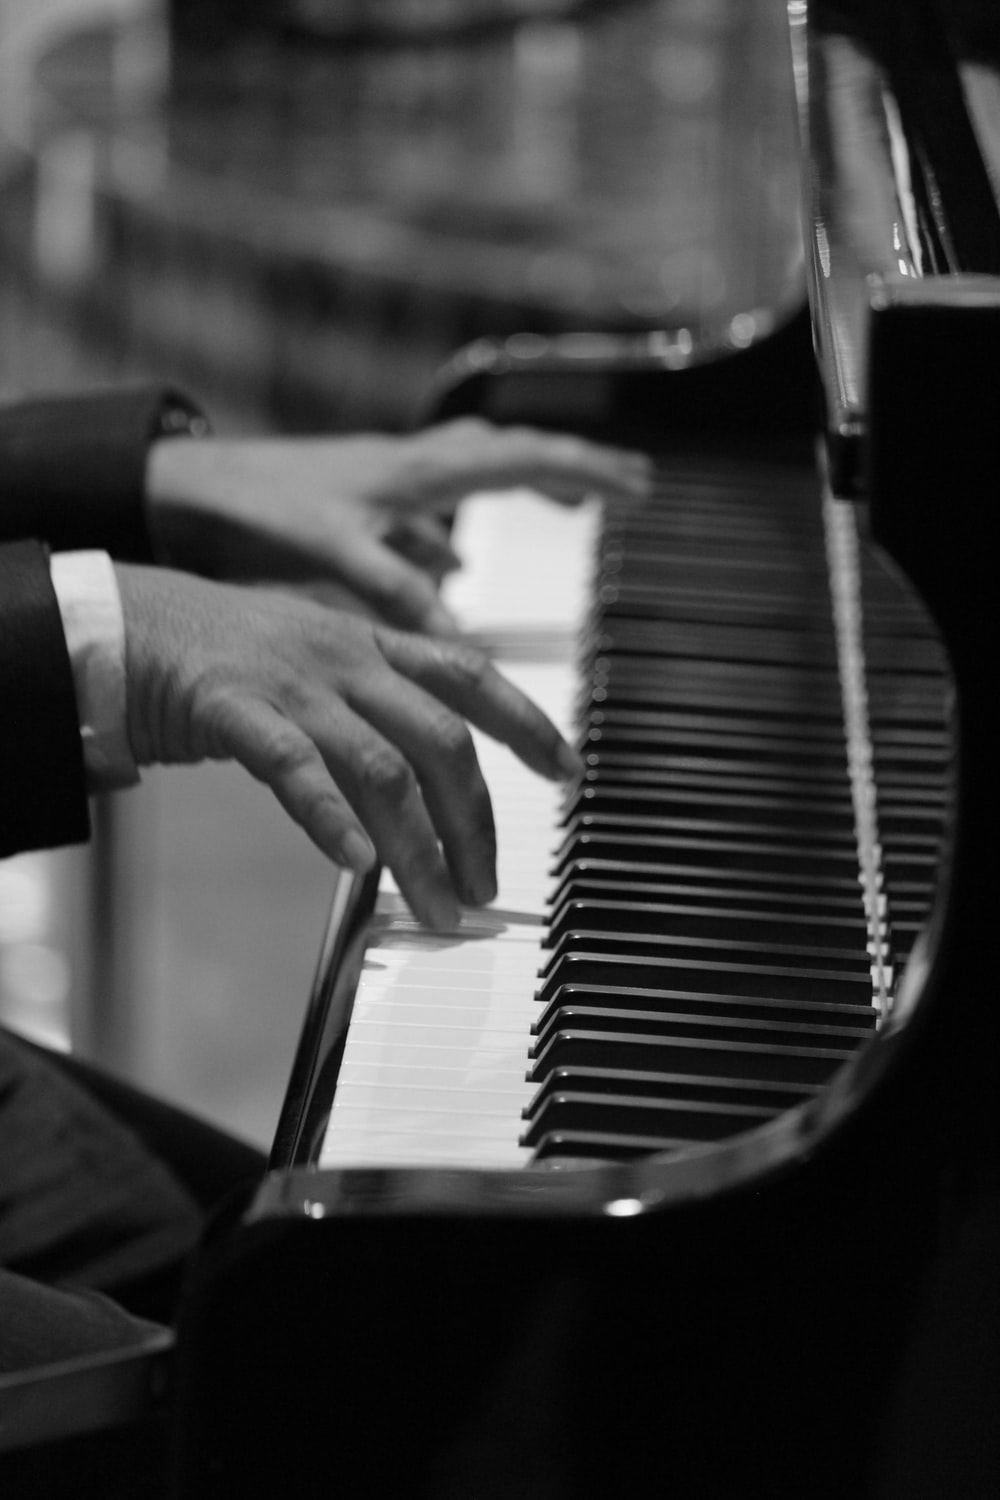 grayscale and selective focus photo of person playing piano